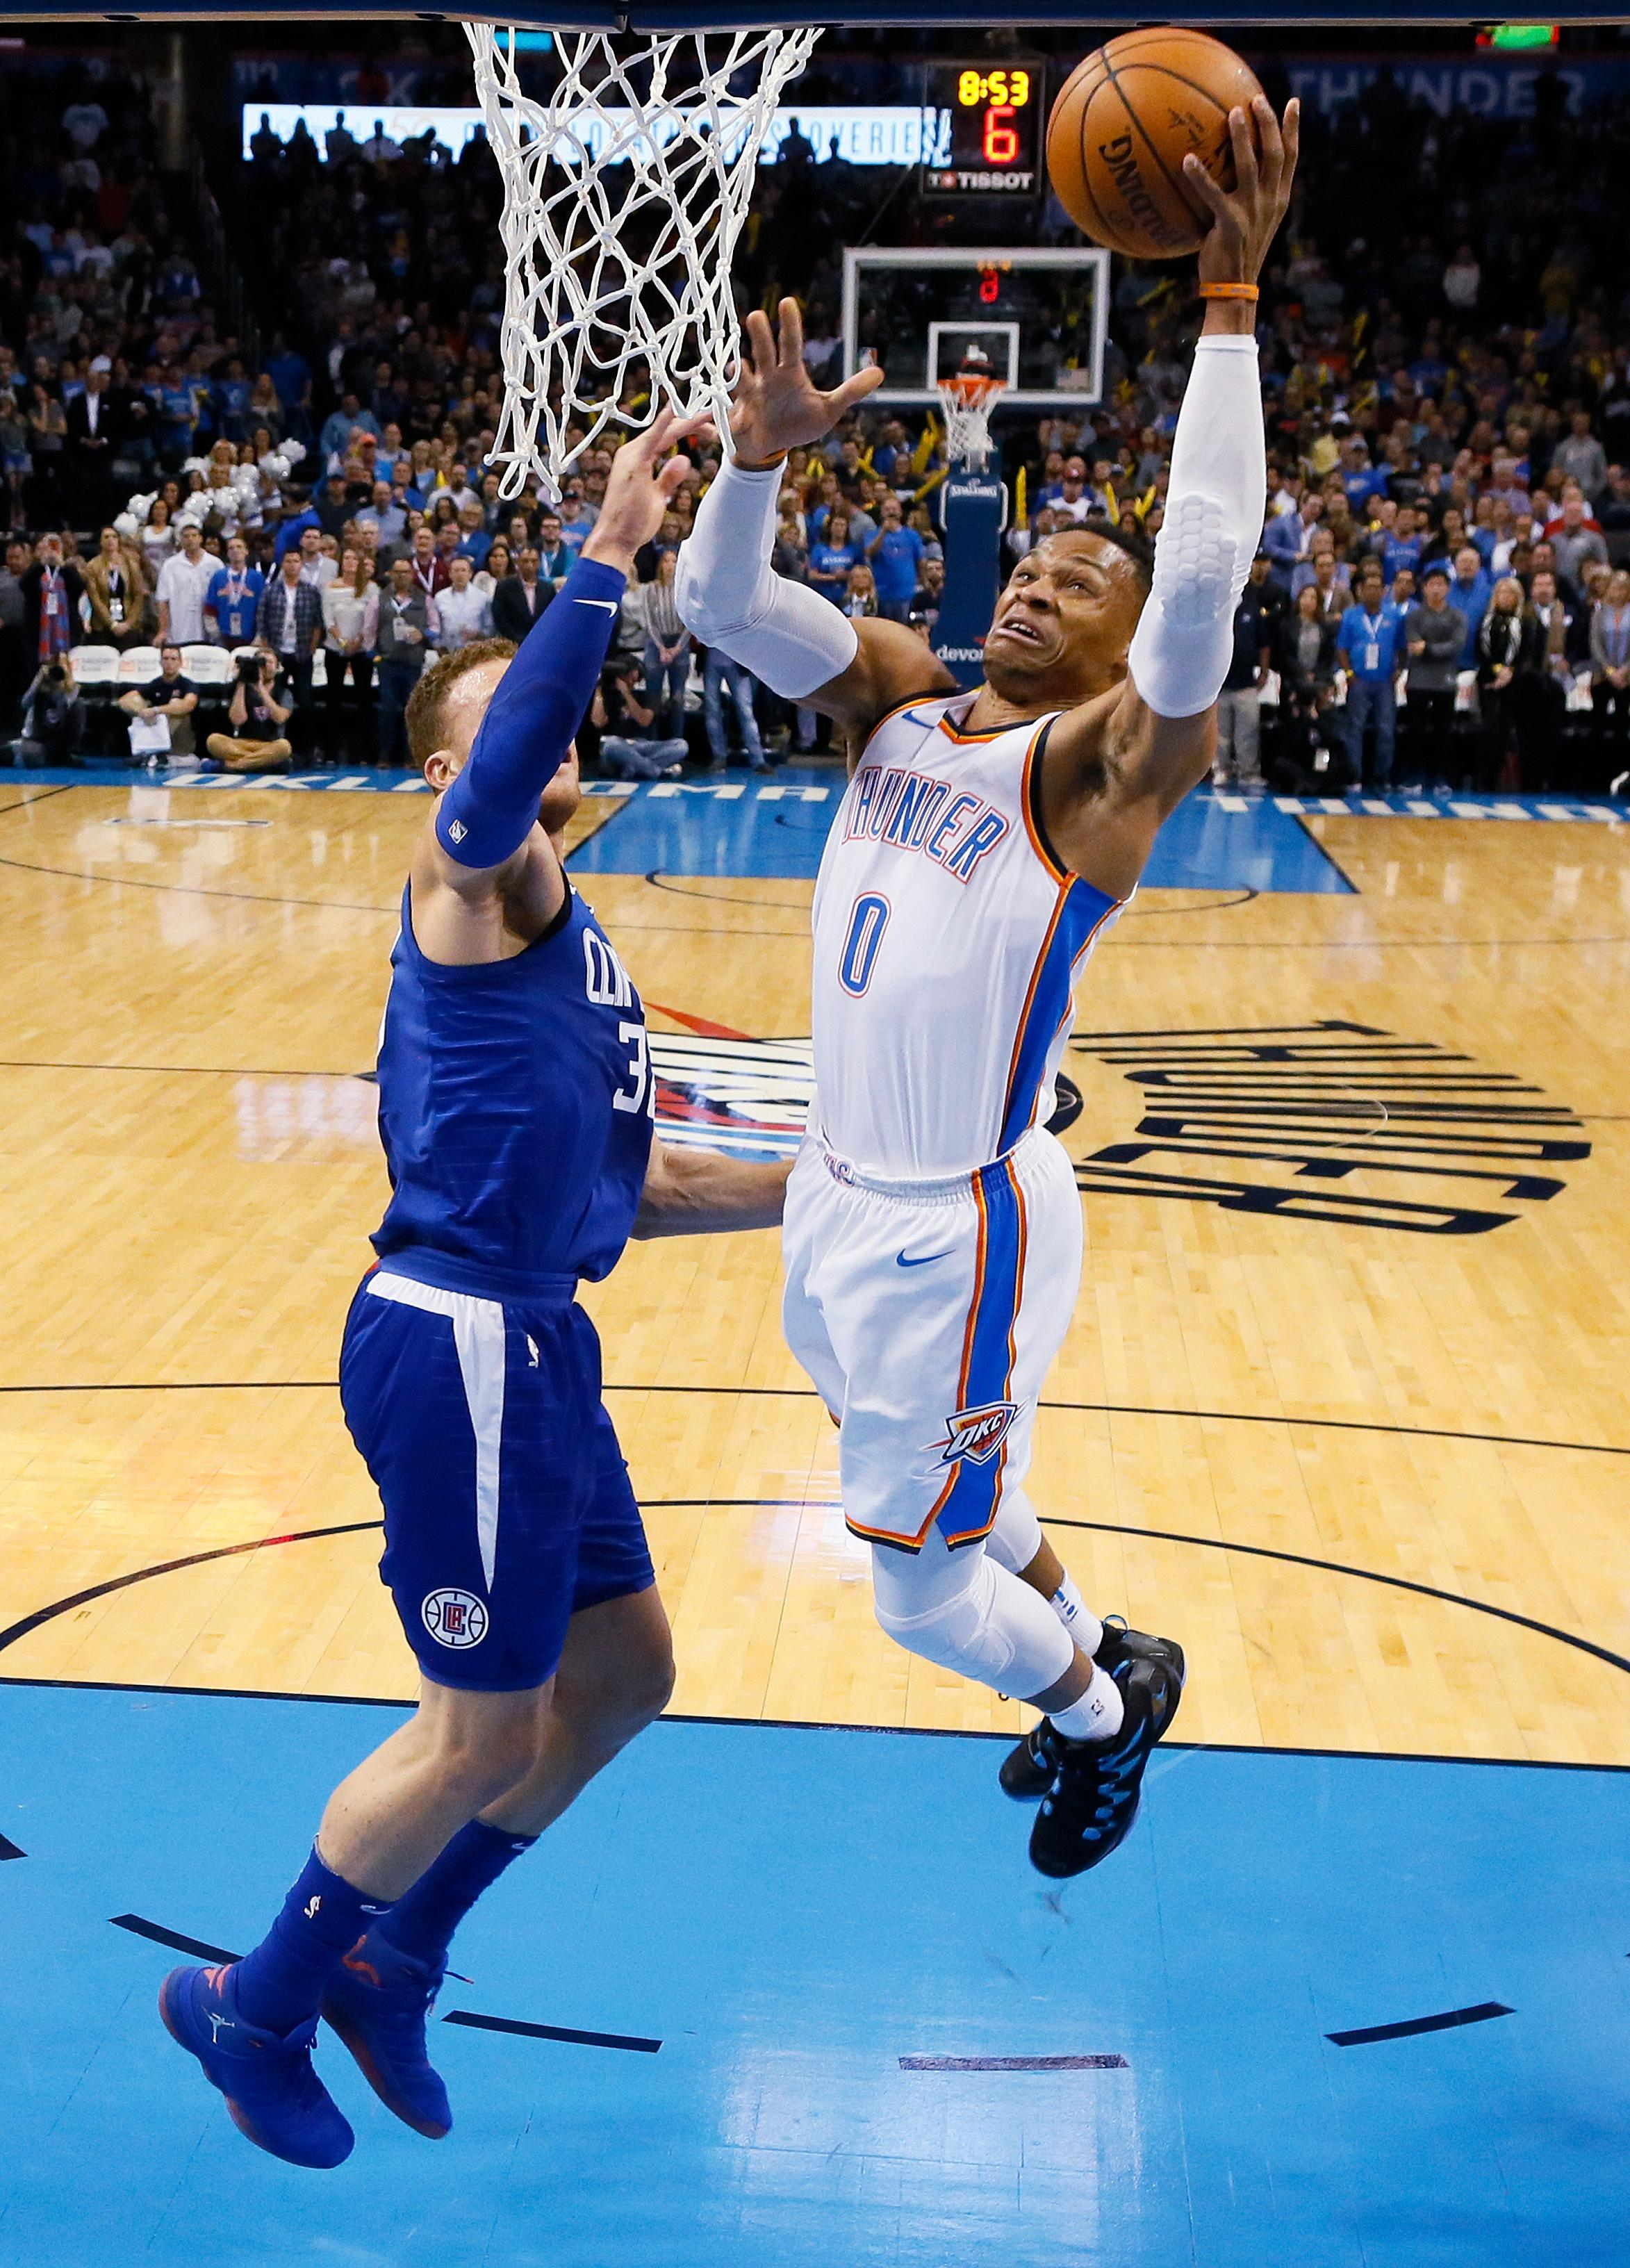 Oklahoma City Thunder guard Russell Westbrook, left, shoots in front of Los Angeles Clippers forward Blake Griffin (32) in the first quarter of an NBA basketball game in Oklahoma City, Friday, Nov. 10, 2017. (AP Photo/Sue Ogrocki)